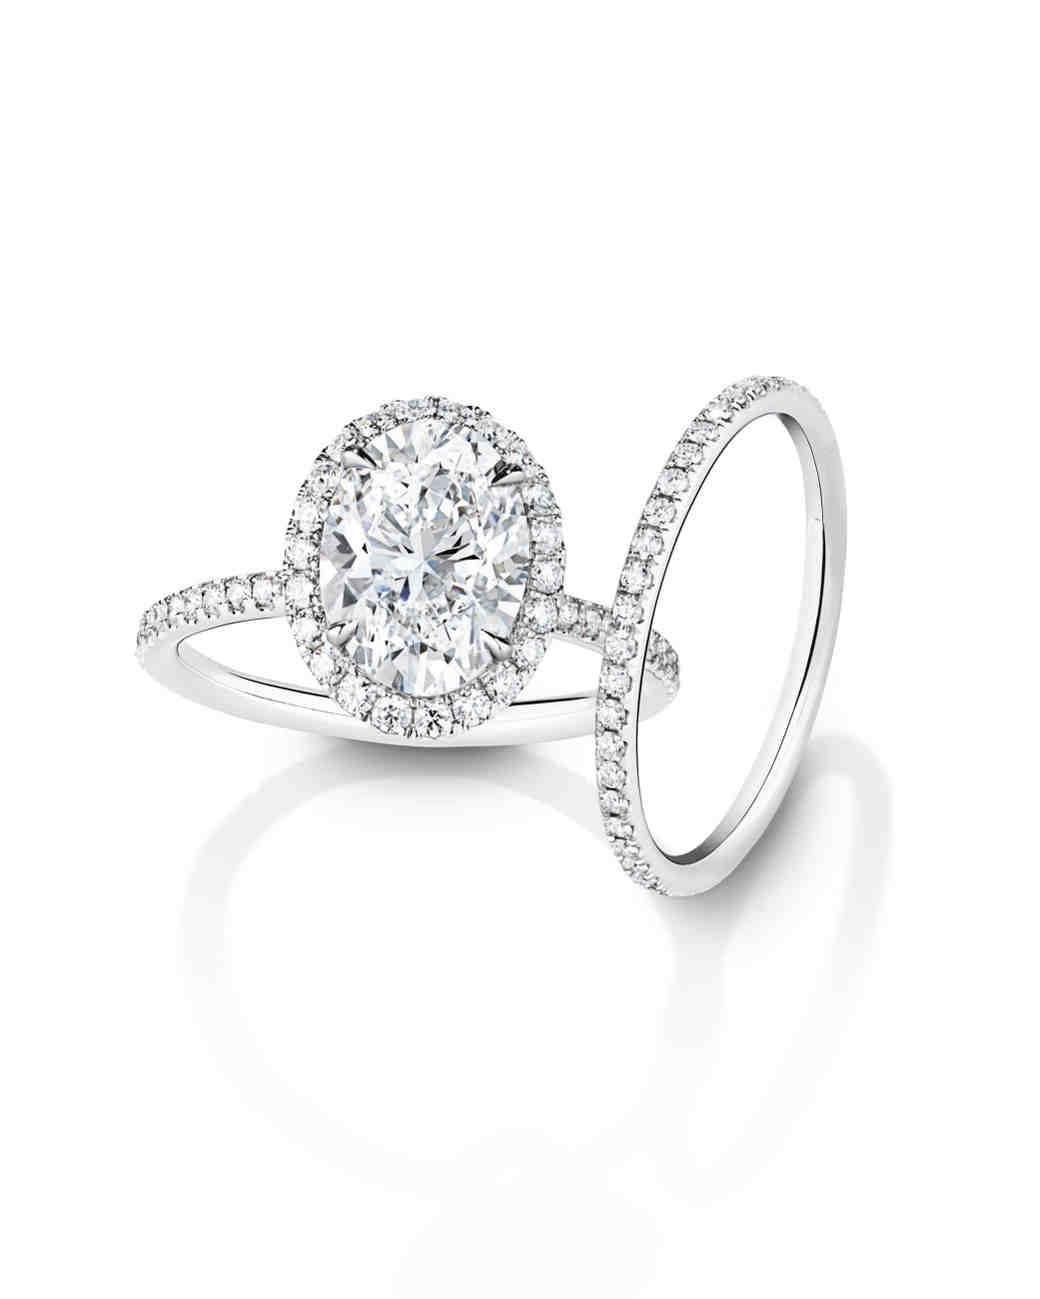 A Guide To Harry Winston Engagement Ring Prices – Todayring For Harry Winston Engagement Rings (View 9 of 15)